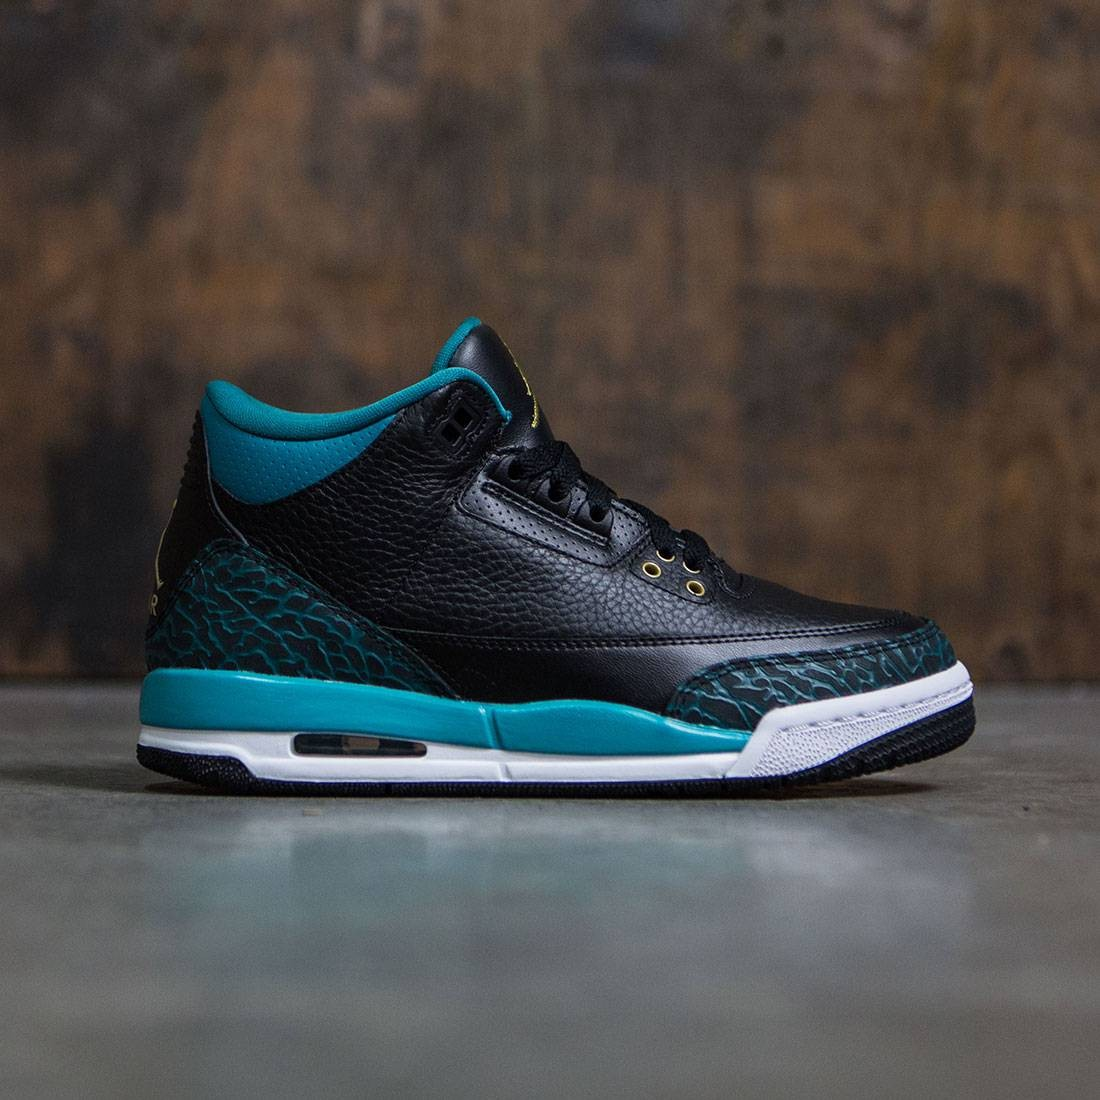 online store 4201d c7e49 Jordan Big Kids Girls  Air Jordan 3 Retro (GS) (black   metallic gold-rio  teal-white)